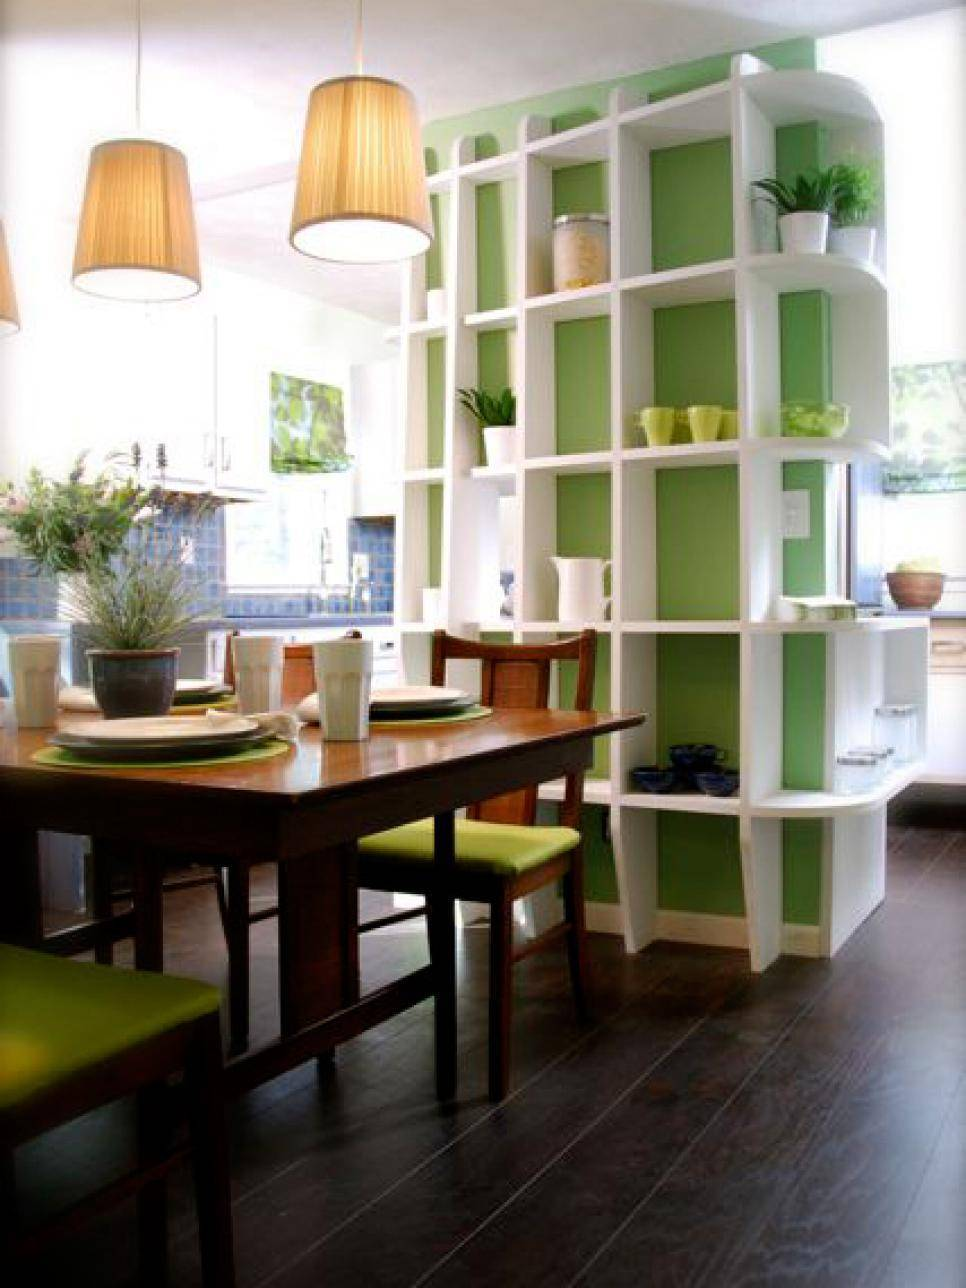 How To Make Dining Room Decorating Ideas To Get Your Home ... on Bedroom Ideas For Small Spaces  id=67566